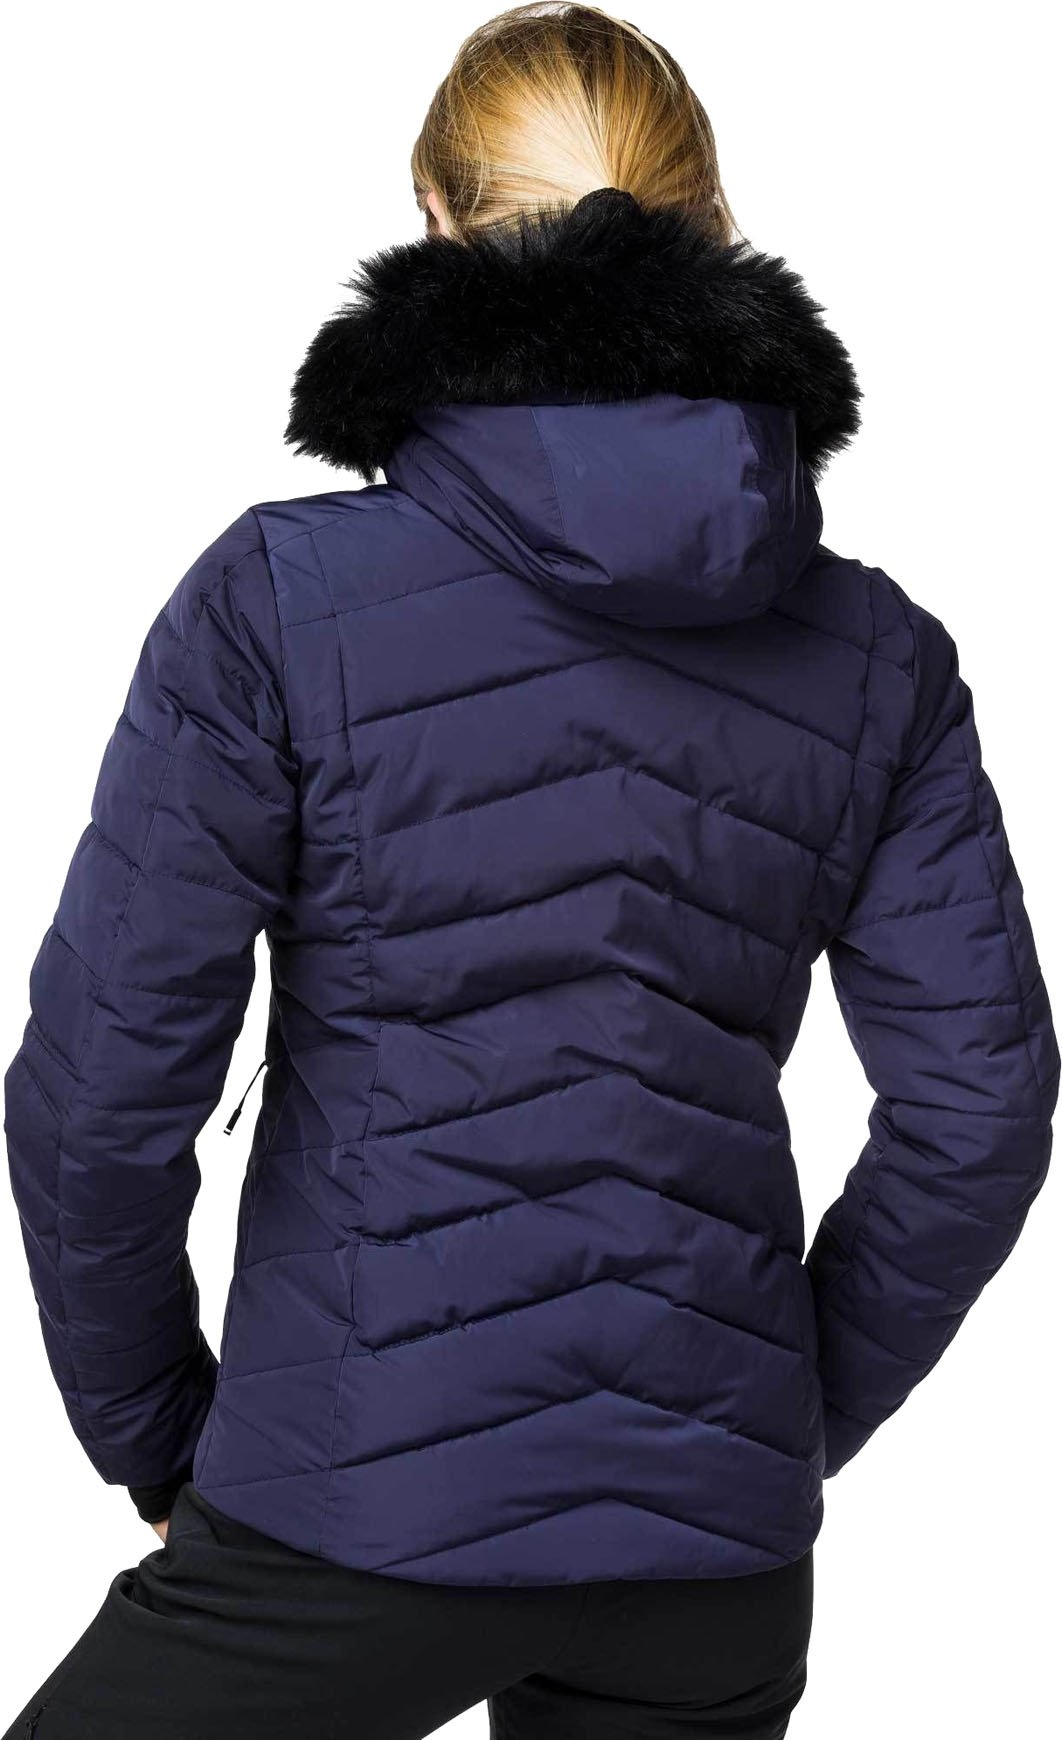 Nocturne Rossignol Women/'s Pearly Rapide Ski Jacket